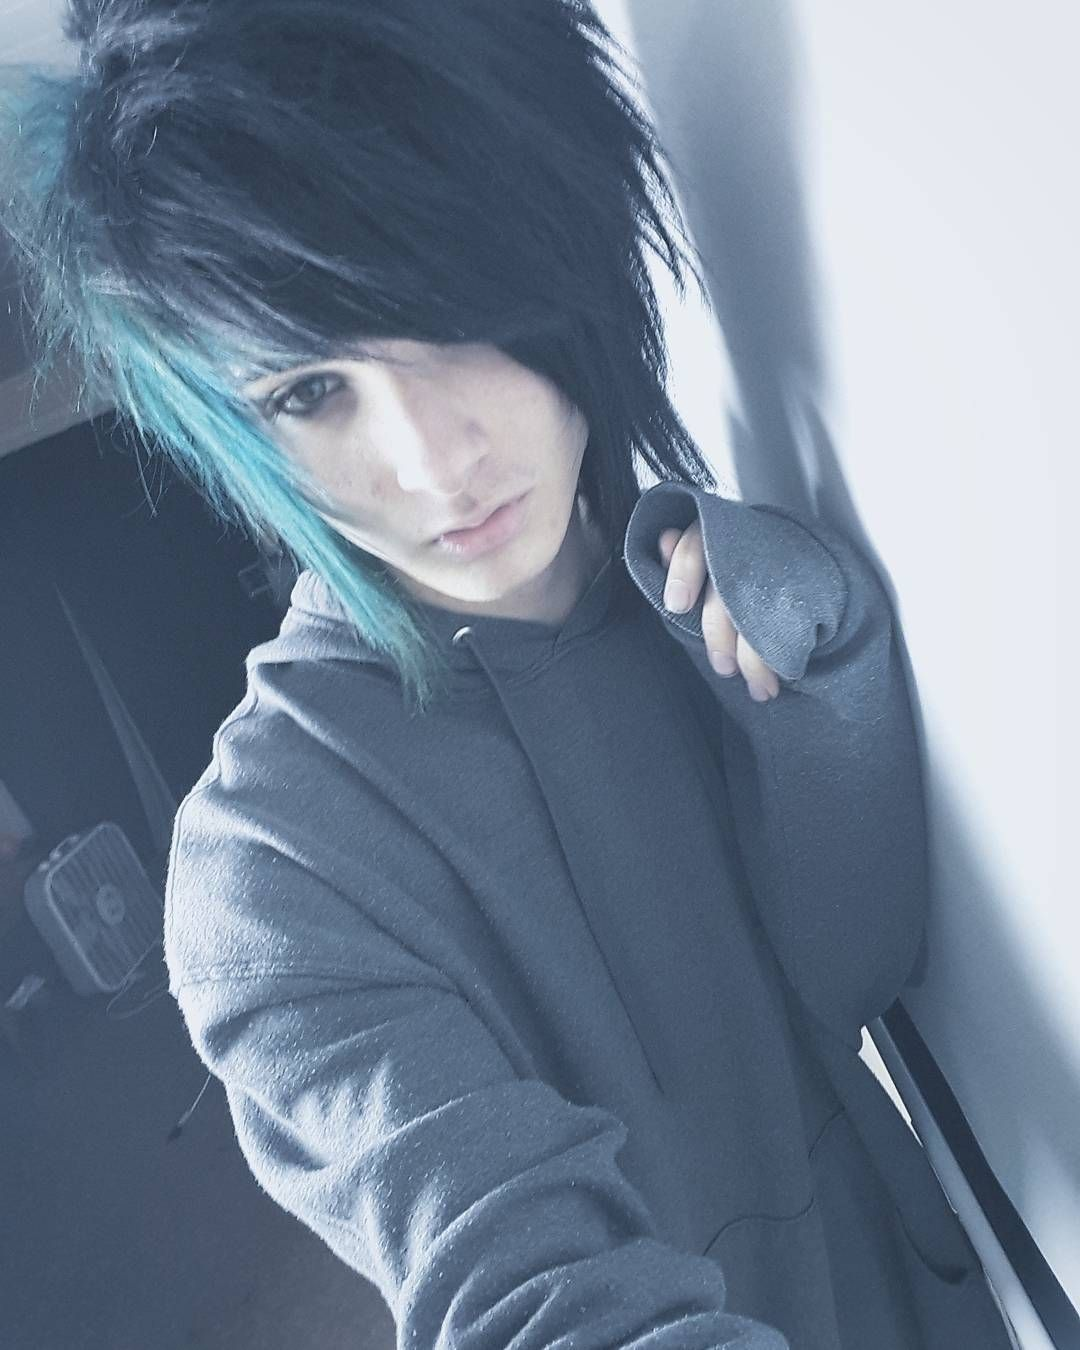 Pin By Stitch Dont Feel Quite Right On Emo Scene Boys Cute Emo Boys Emo Boy Hair Cute Emo